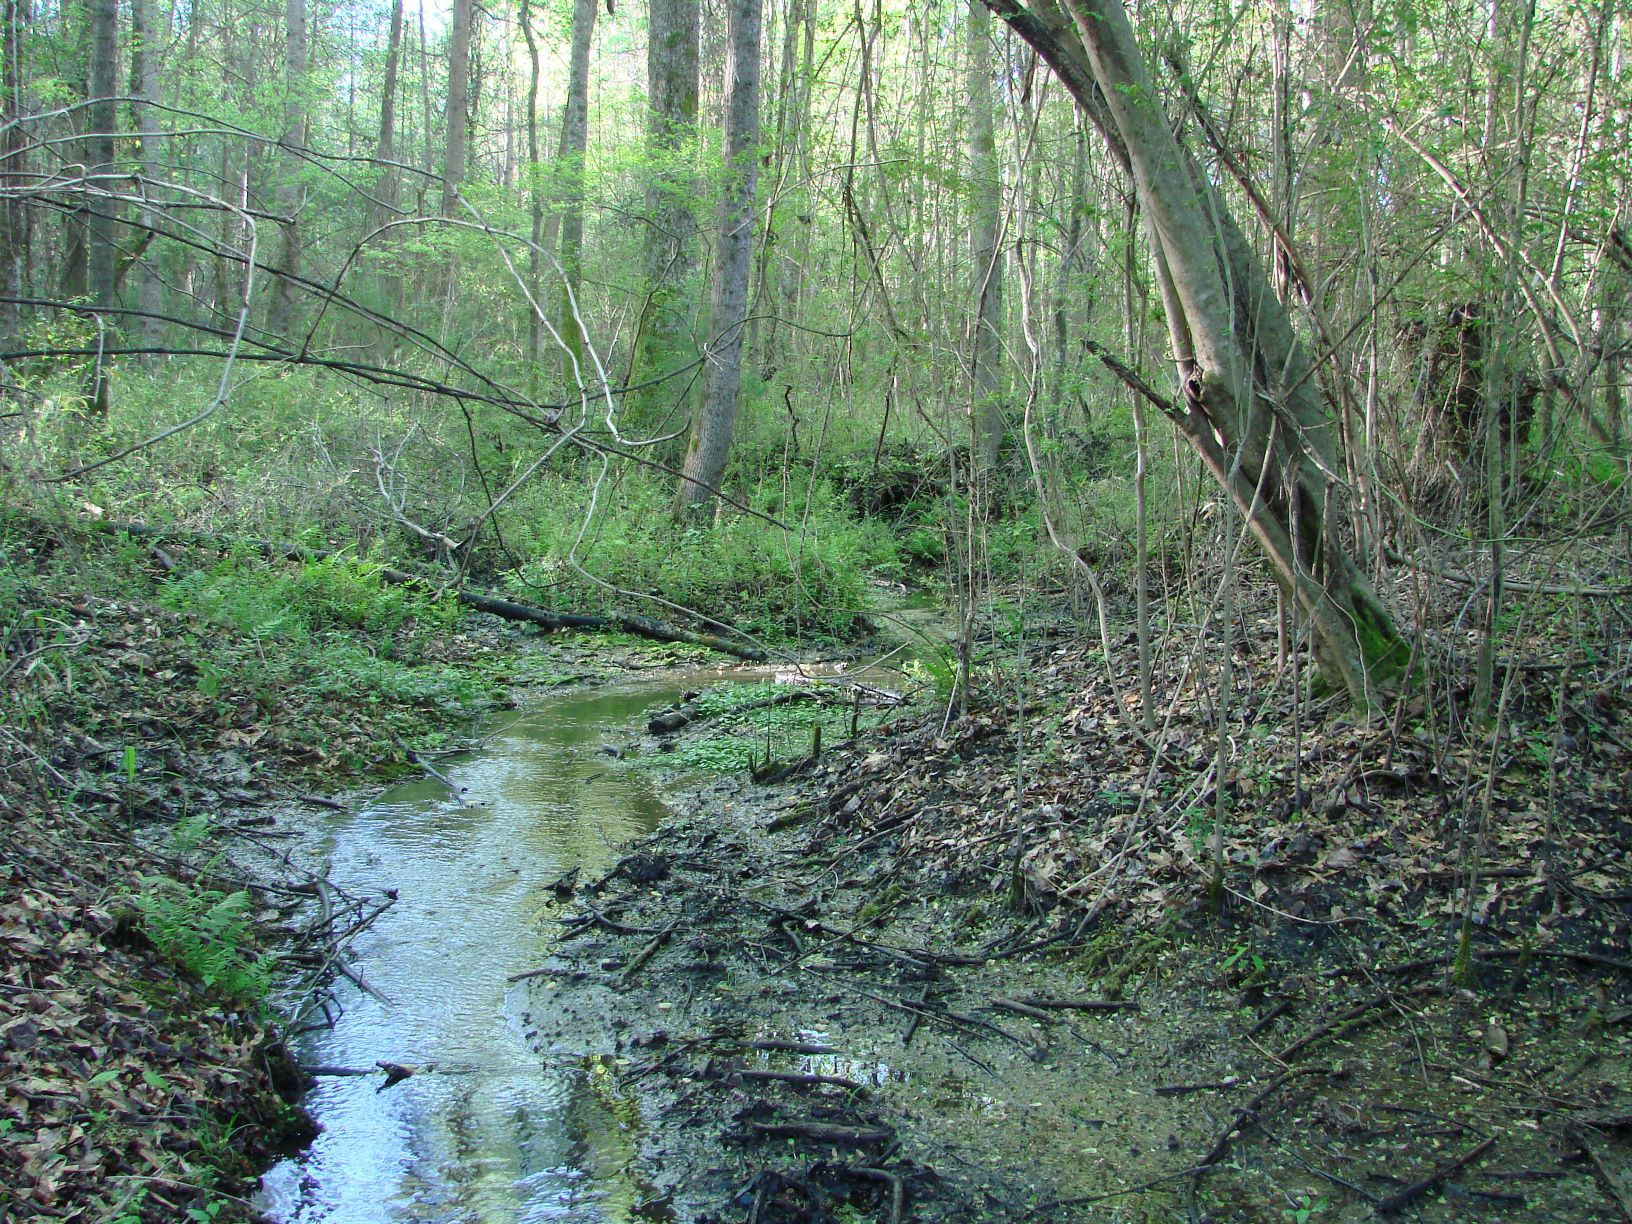 This spring-fed creek flows out of a stand of hardwood timber